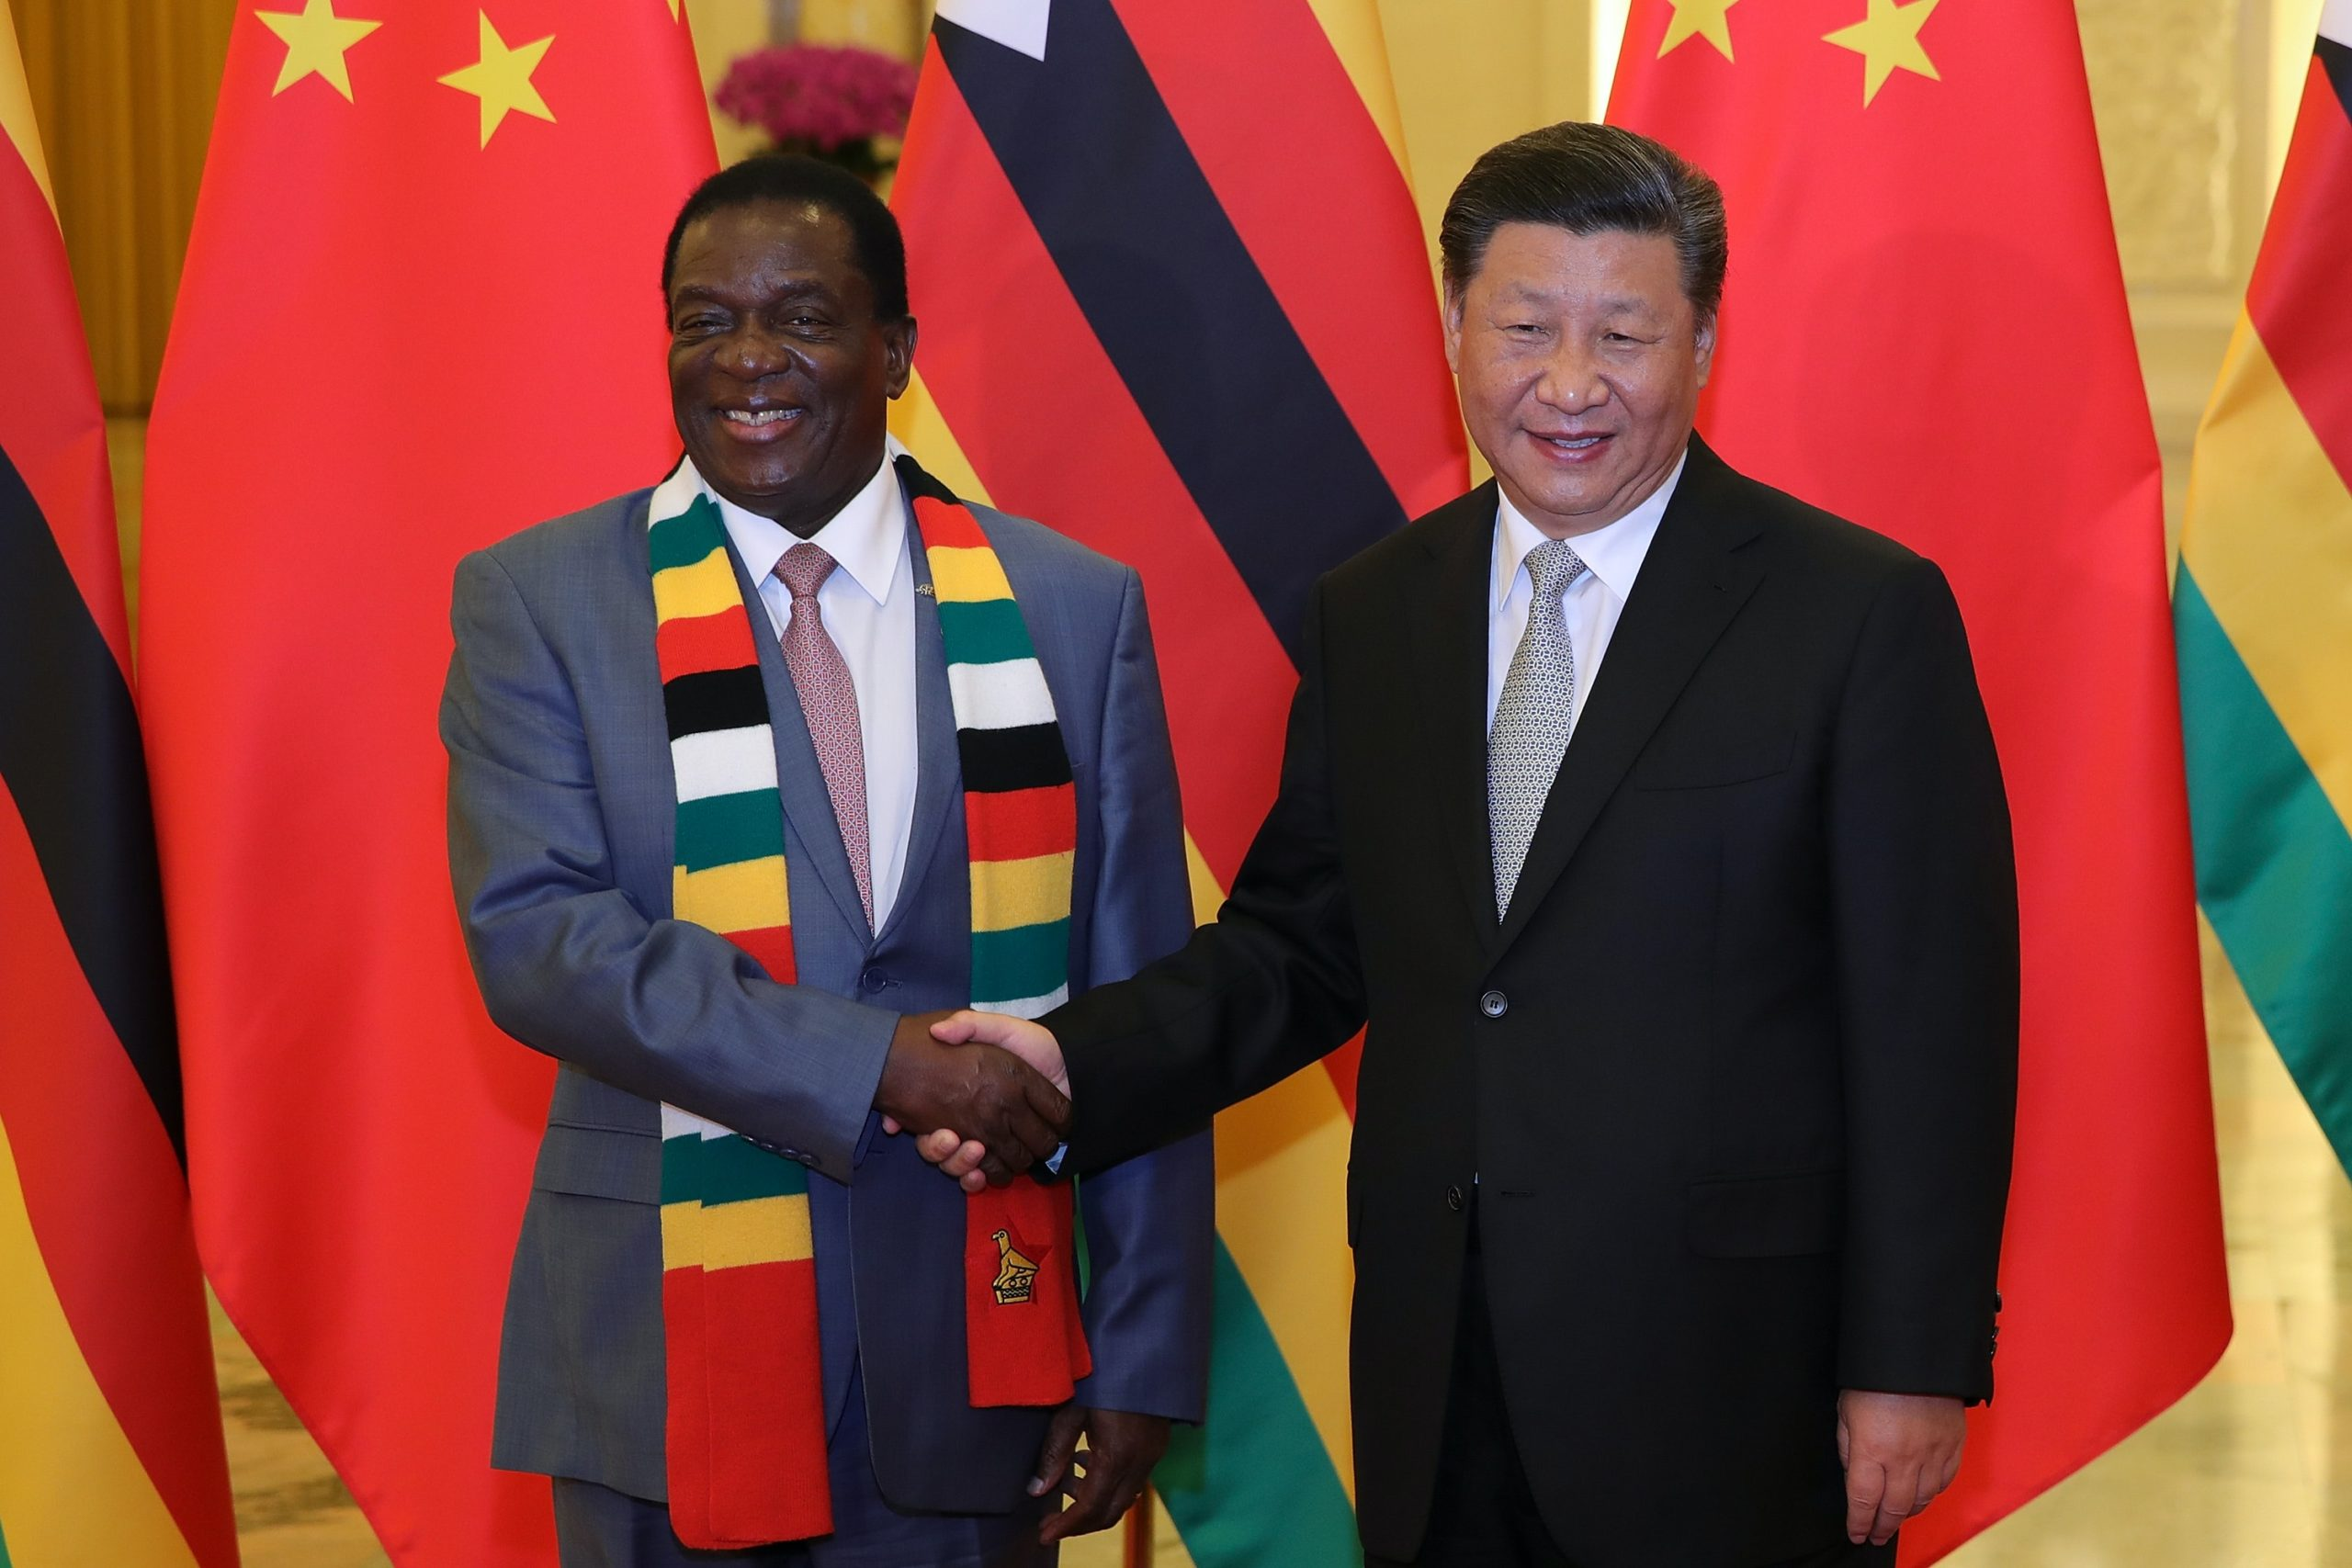 President Mnangagwa claimed Zimbabwe was open for business. What's gone wrong